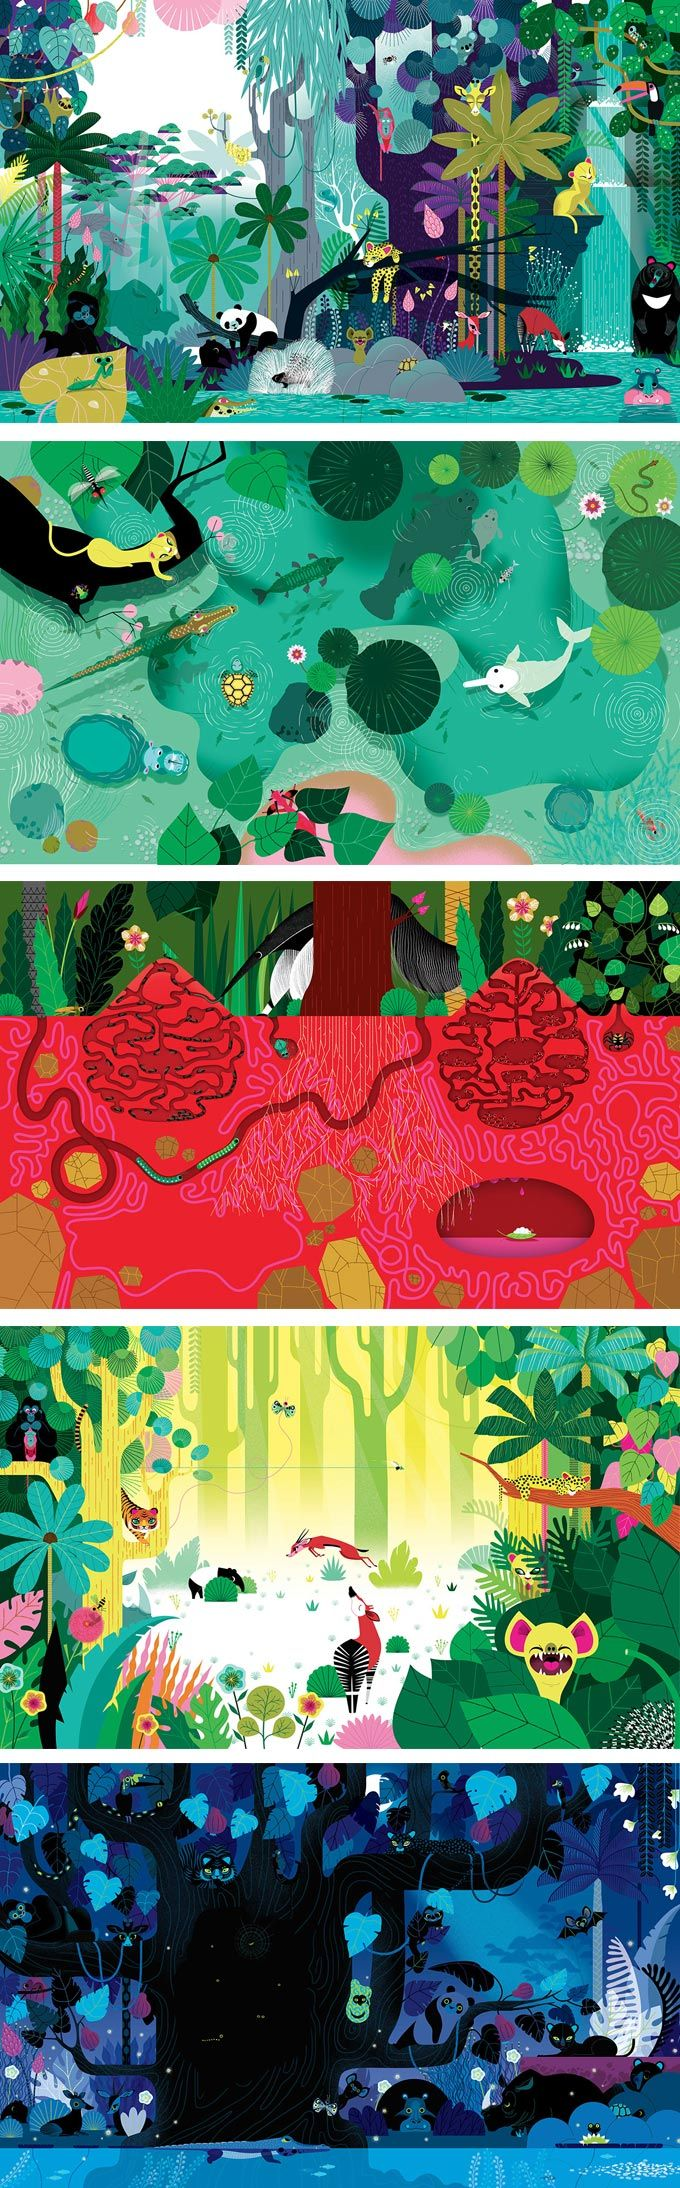 Illustrator Lucie Brunellière produced this series of playful images for The Very Jungly Jungle Book. There are over 50 characters within them!